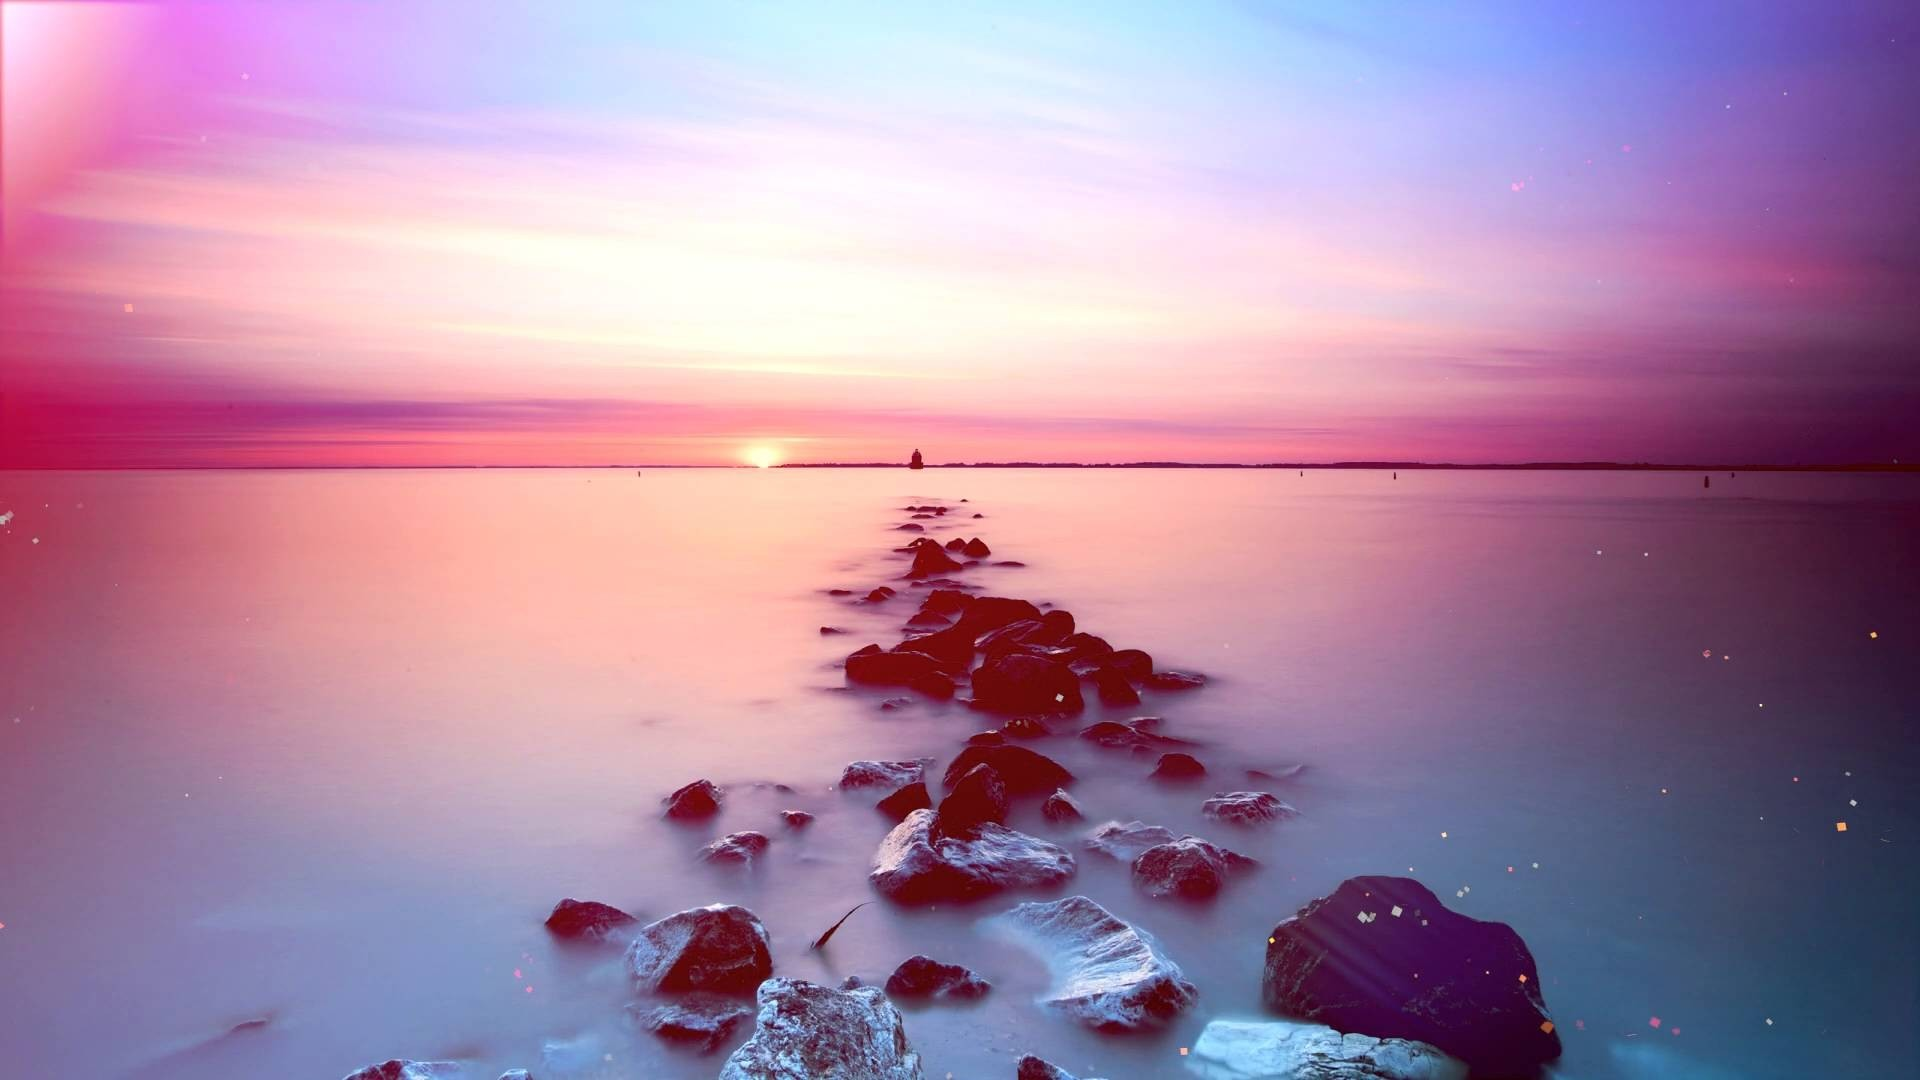 relaxing wallpapers for android many hd wallpaper